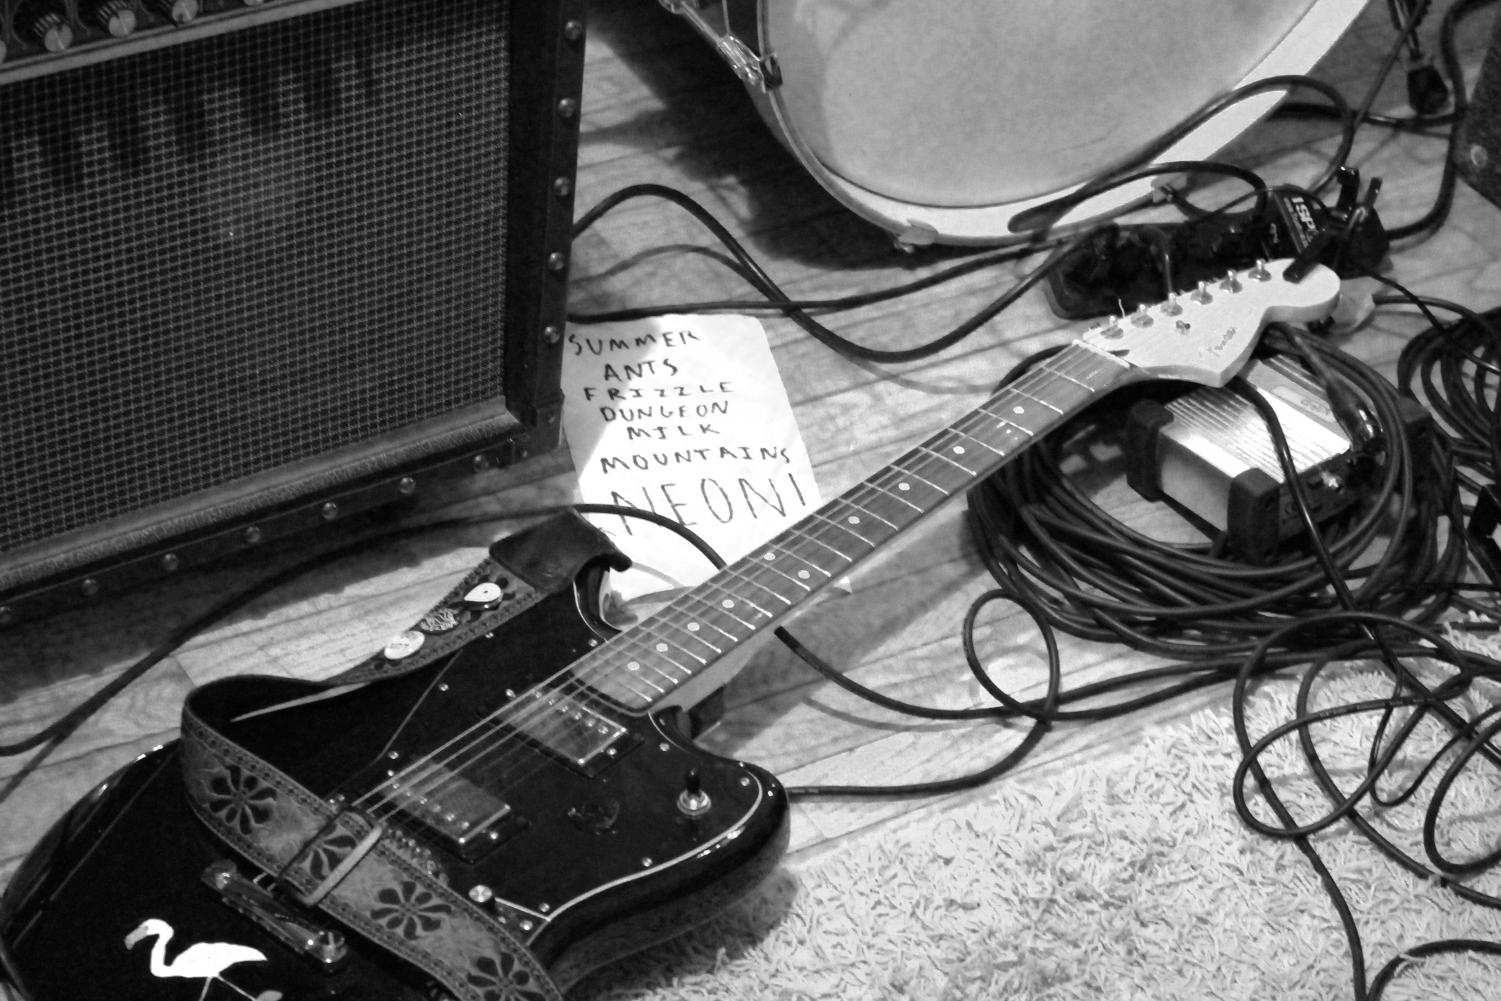 Tre Byers guitar next to the night's set list. Byers and his band Dodging played a 30 minute set at a house show in Lawrence, Kansas on Saturday Feb. 3.